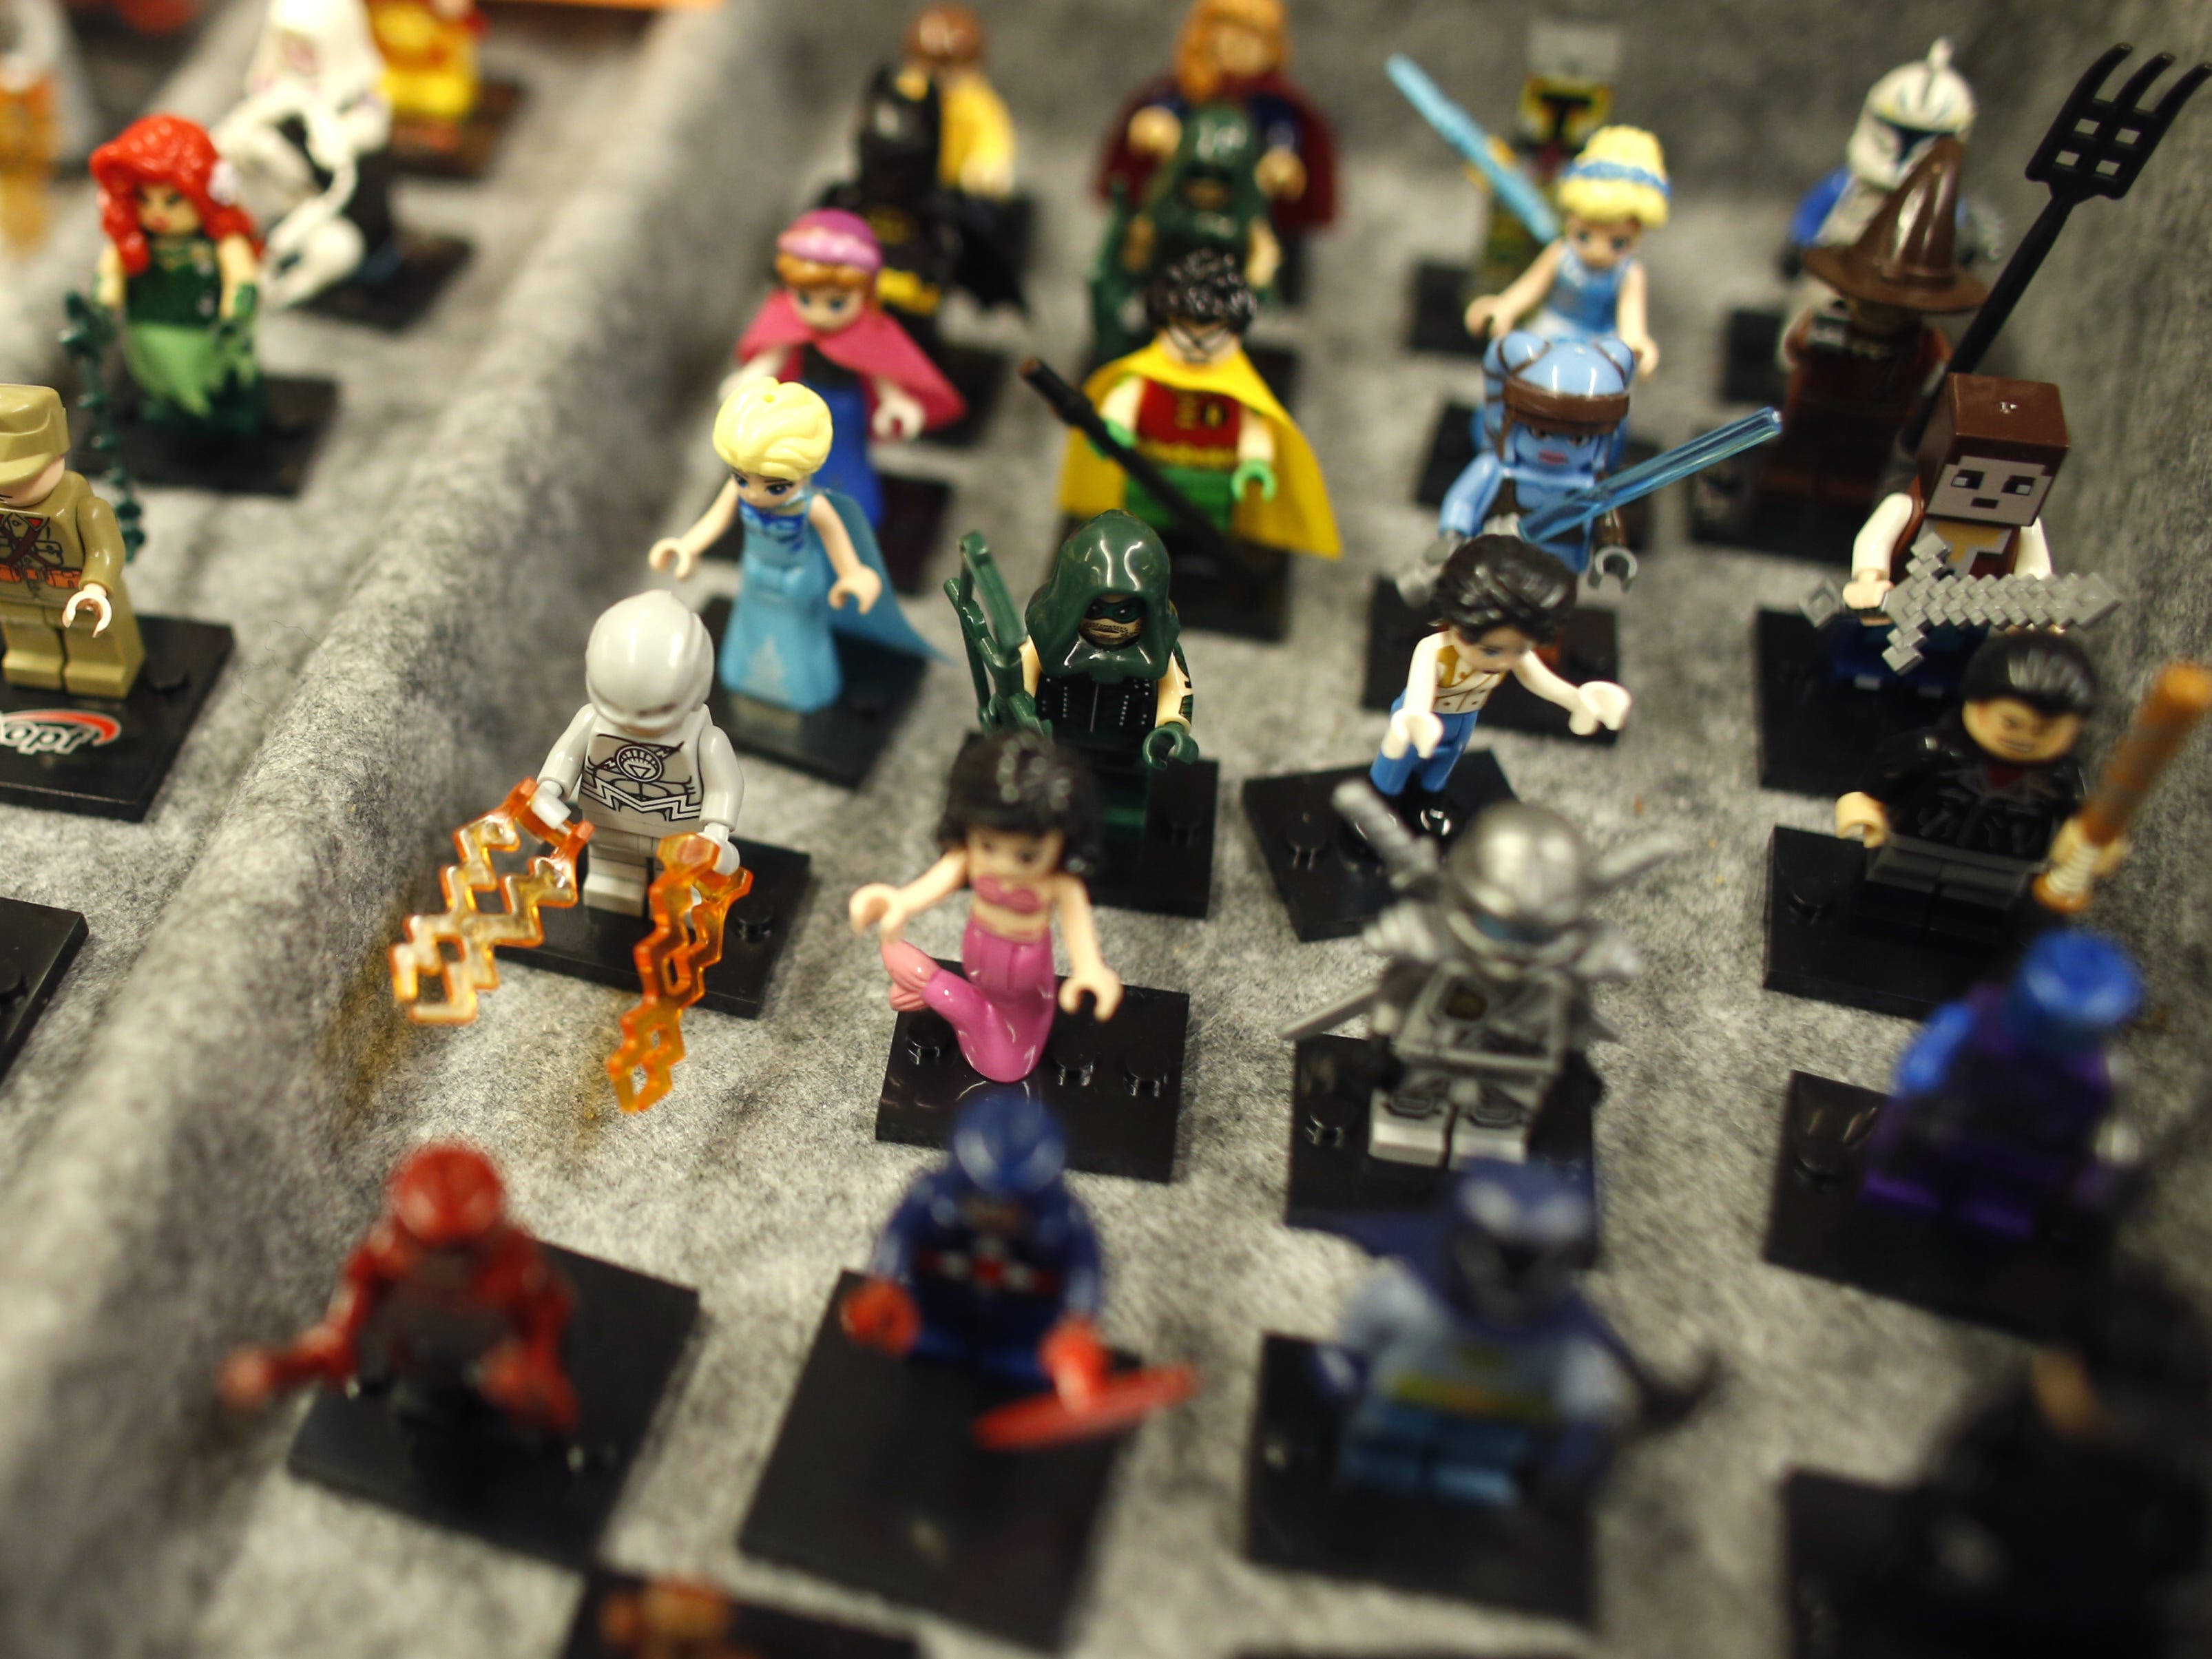 Lego figurines are for sale on opening day of Ace Comic Con 2019 at Gila River Arena in Glendale, Ariz. on Jan. 11, 2019.